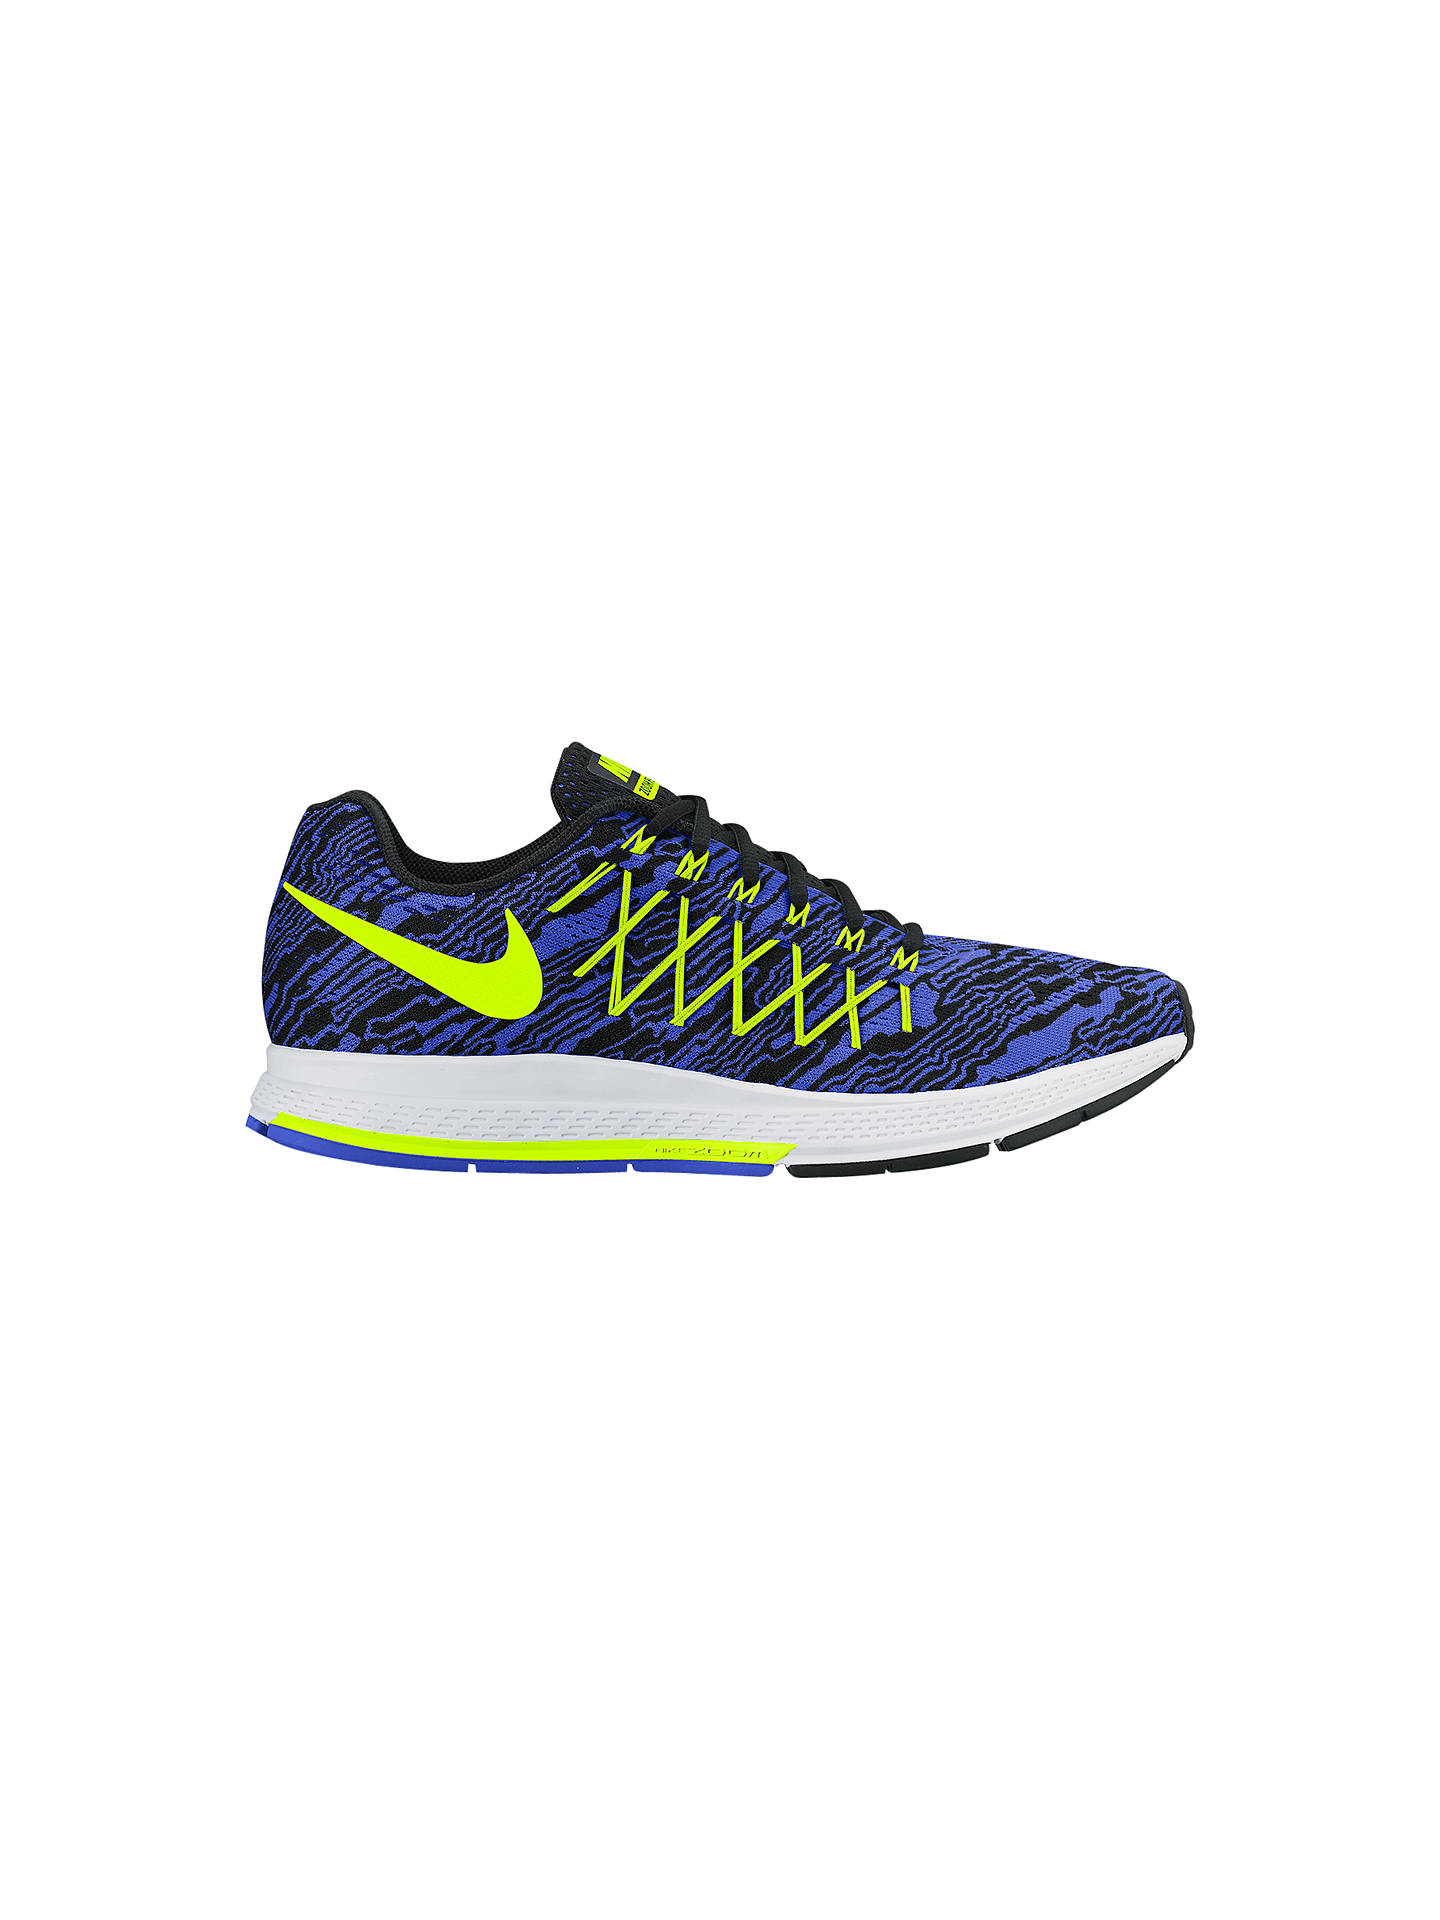 moins cher a0df2 1dd6d Nike Air Zoom Pegasus 32 Men's Running Shoes, Racer Blue ...